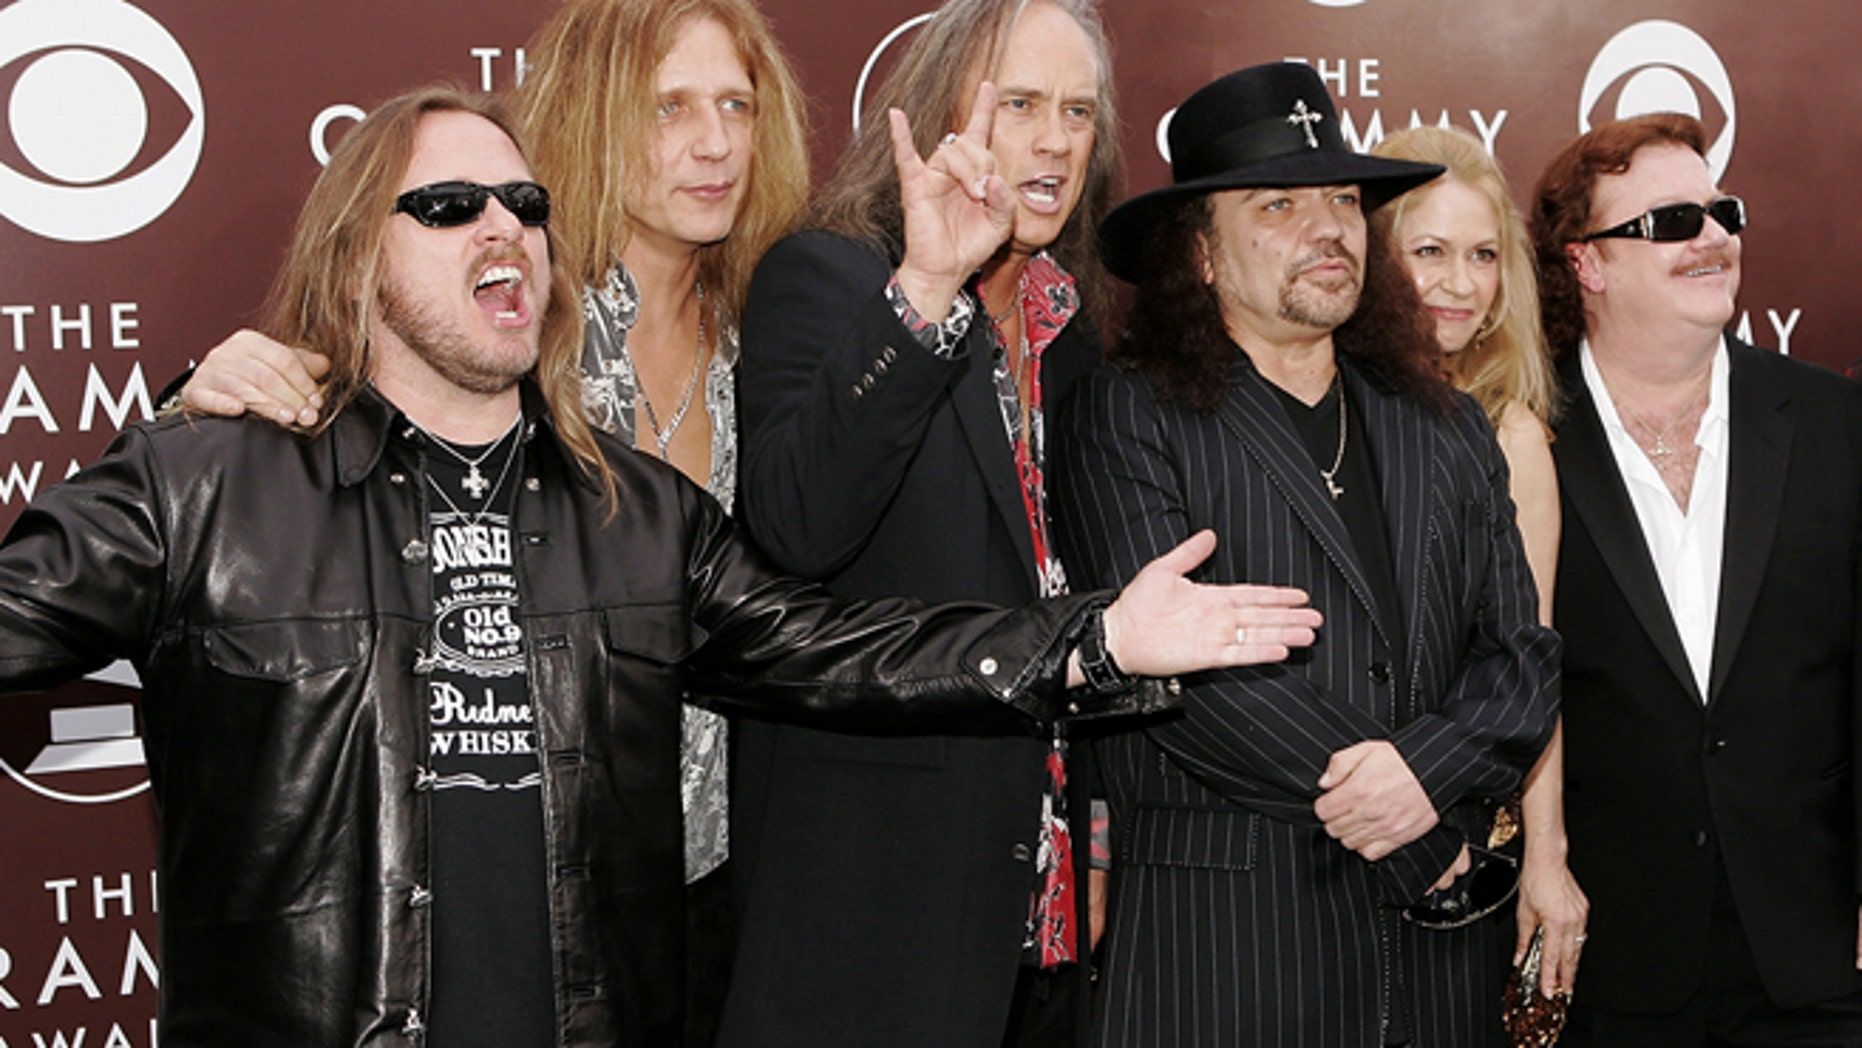 Members of Lynyrd Skynyrd got candid in a new interview with Dan Rather (not pictured)